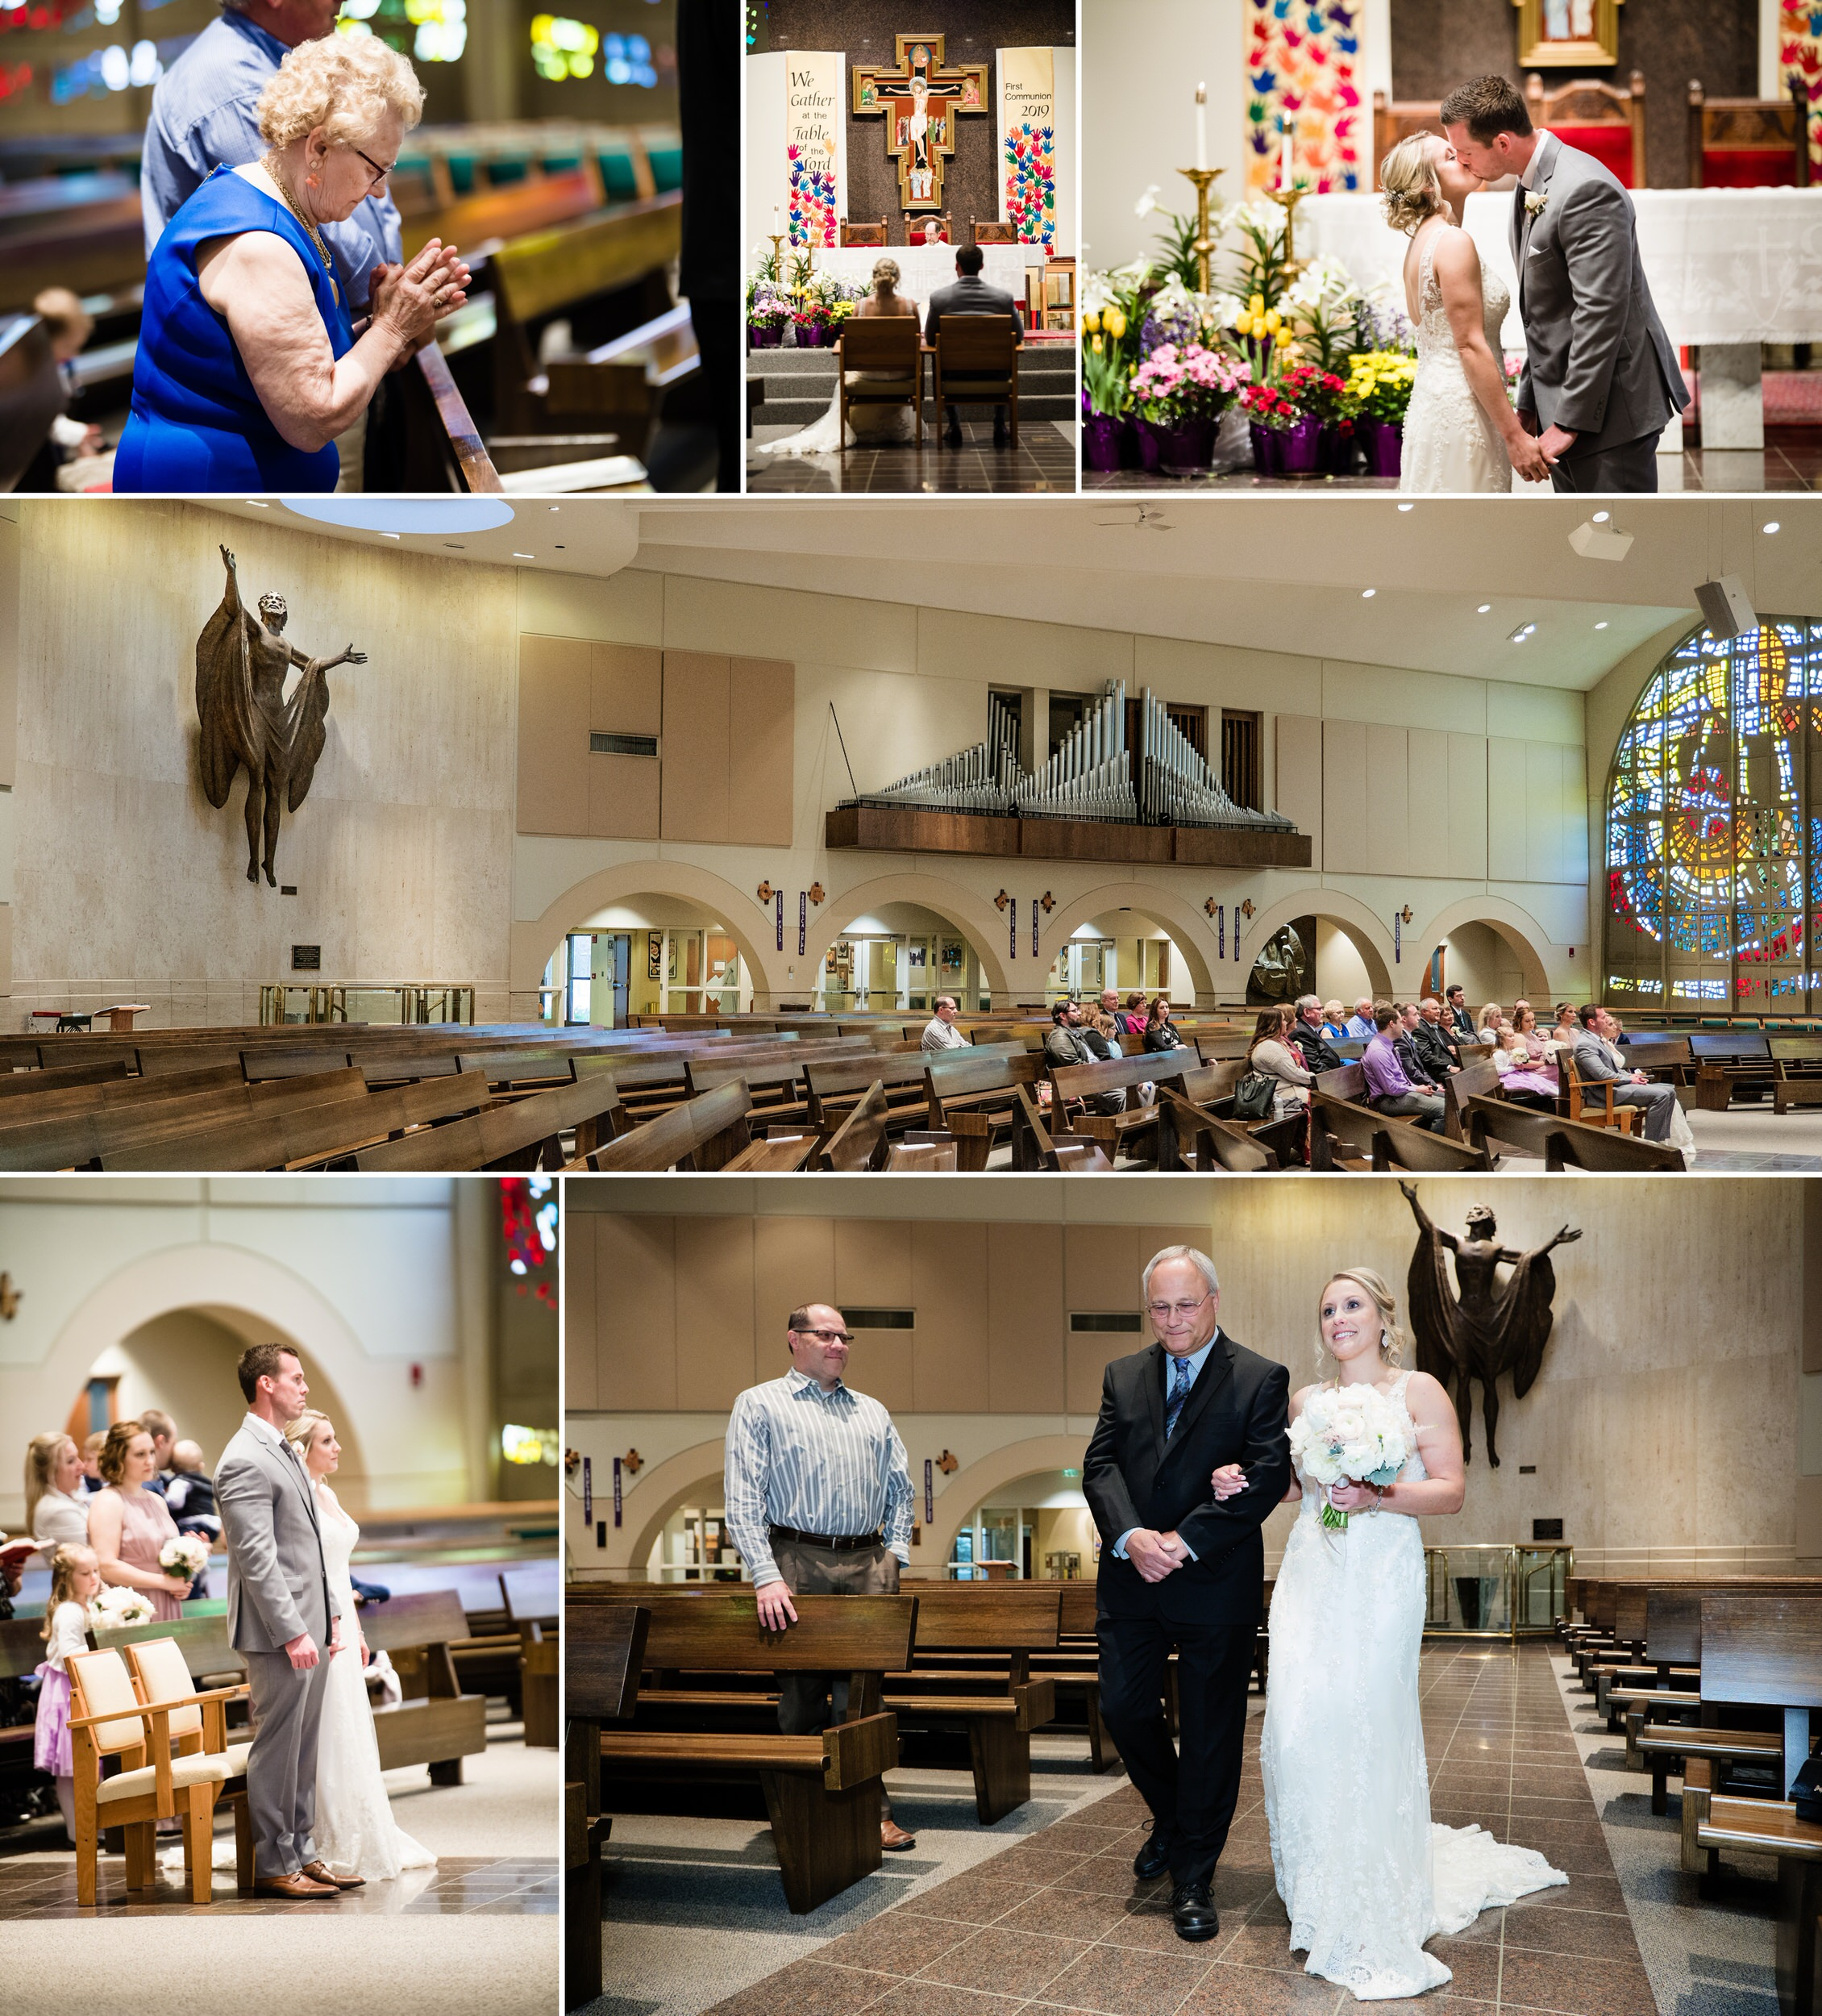 Wedding ceremony at Saint Paul Catholic Church.